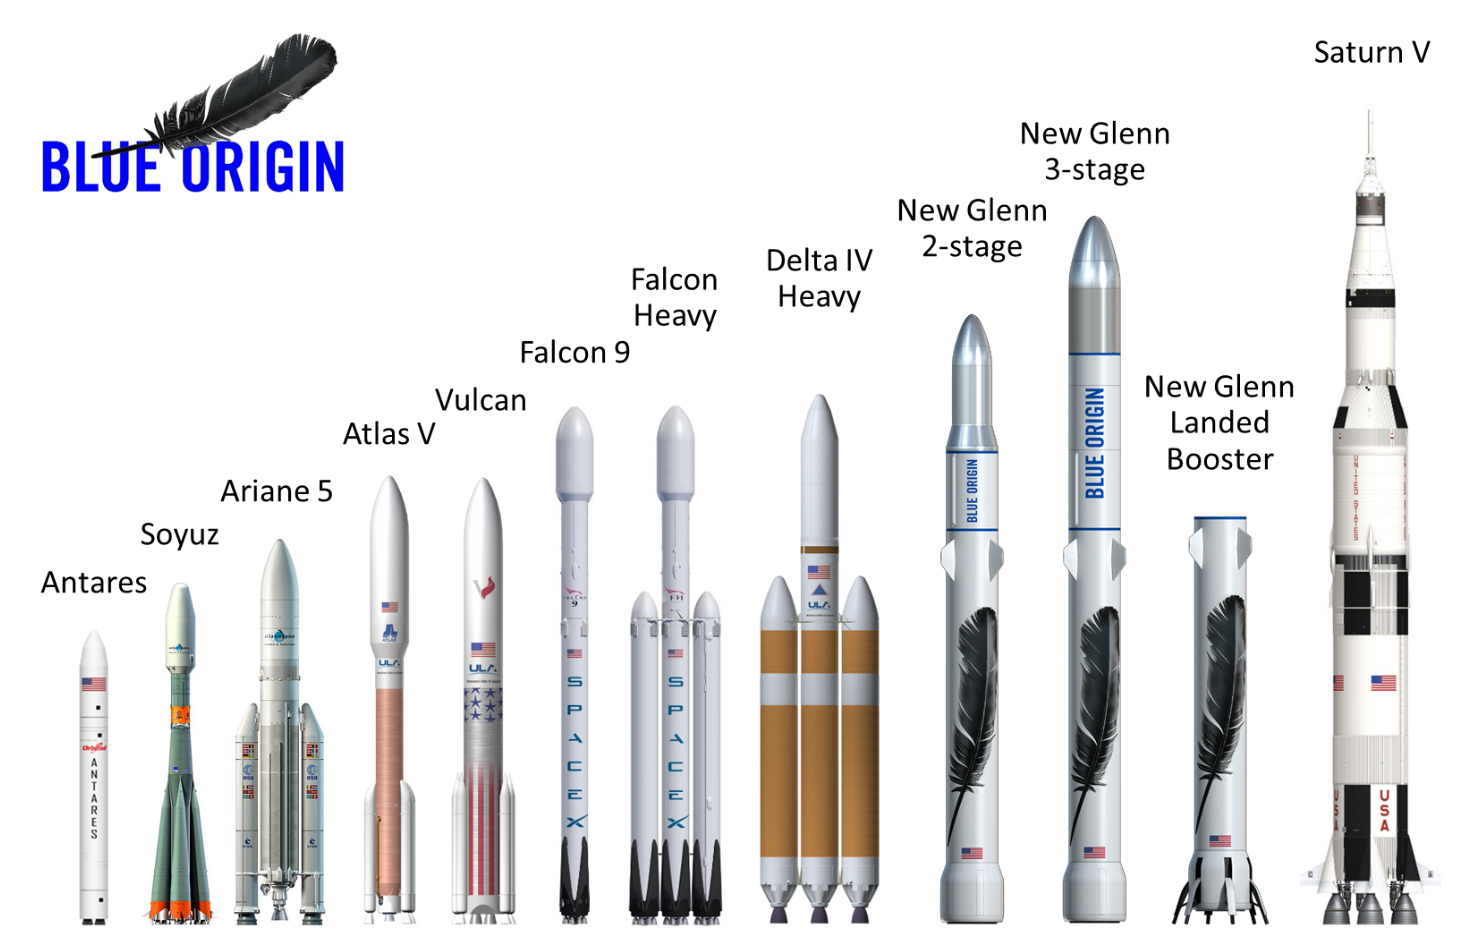 The New Glenn rockets